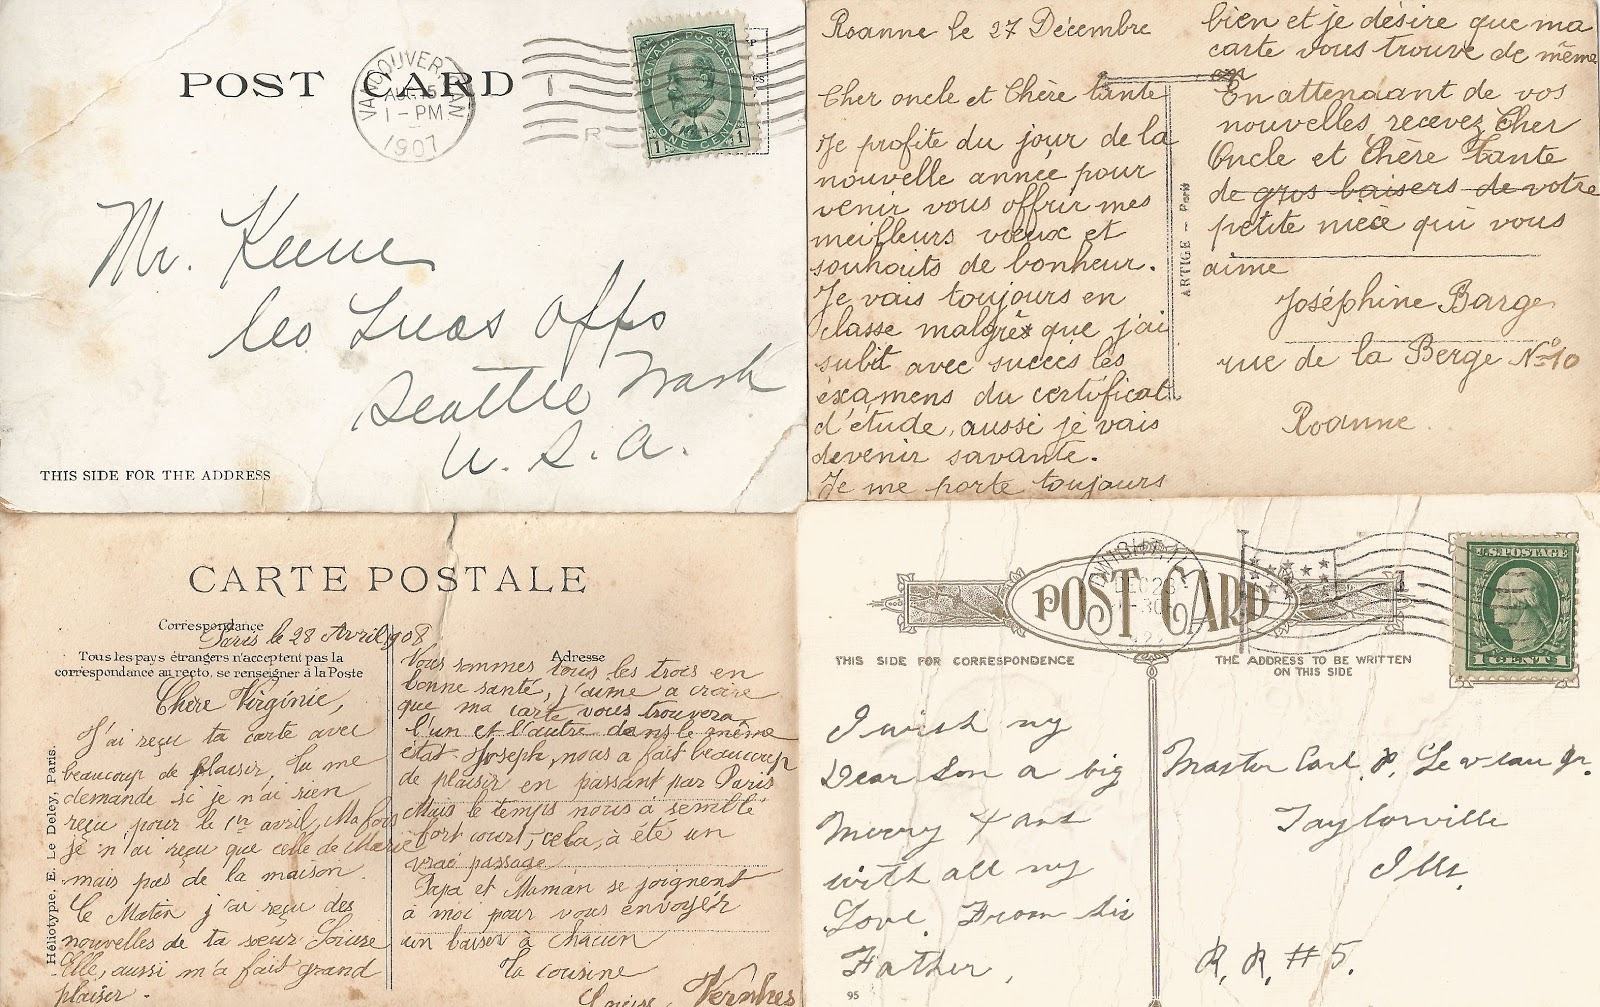 Antique Images: Free Printable Background: Vintage Postcard Back - Free Printable Background Pages